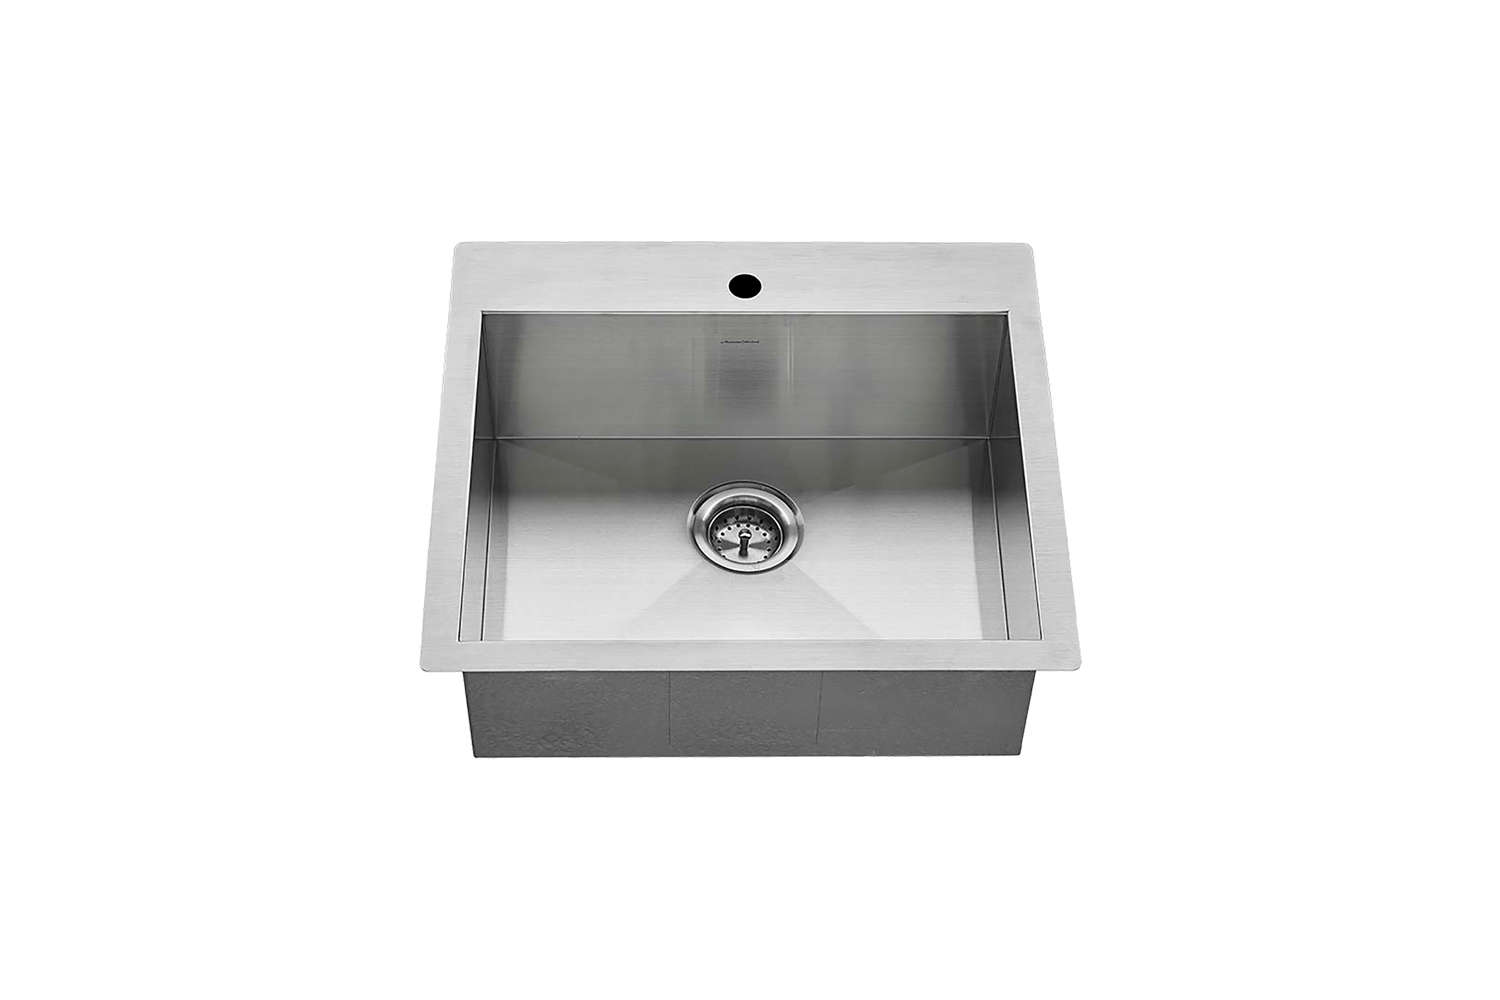 Steal This Look A Stylish Camp Kitchen in a Plywood Summer Cabin The Edgewater Stainless Steel Kitchen Sink is \25 by \2\2 inches; \$500 at American Standard.